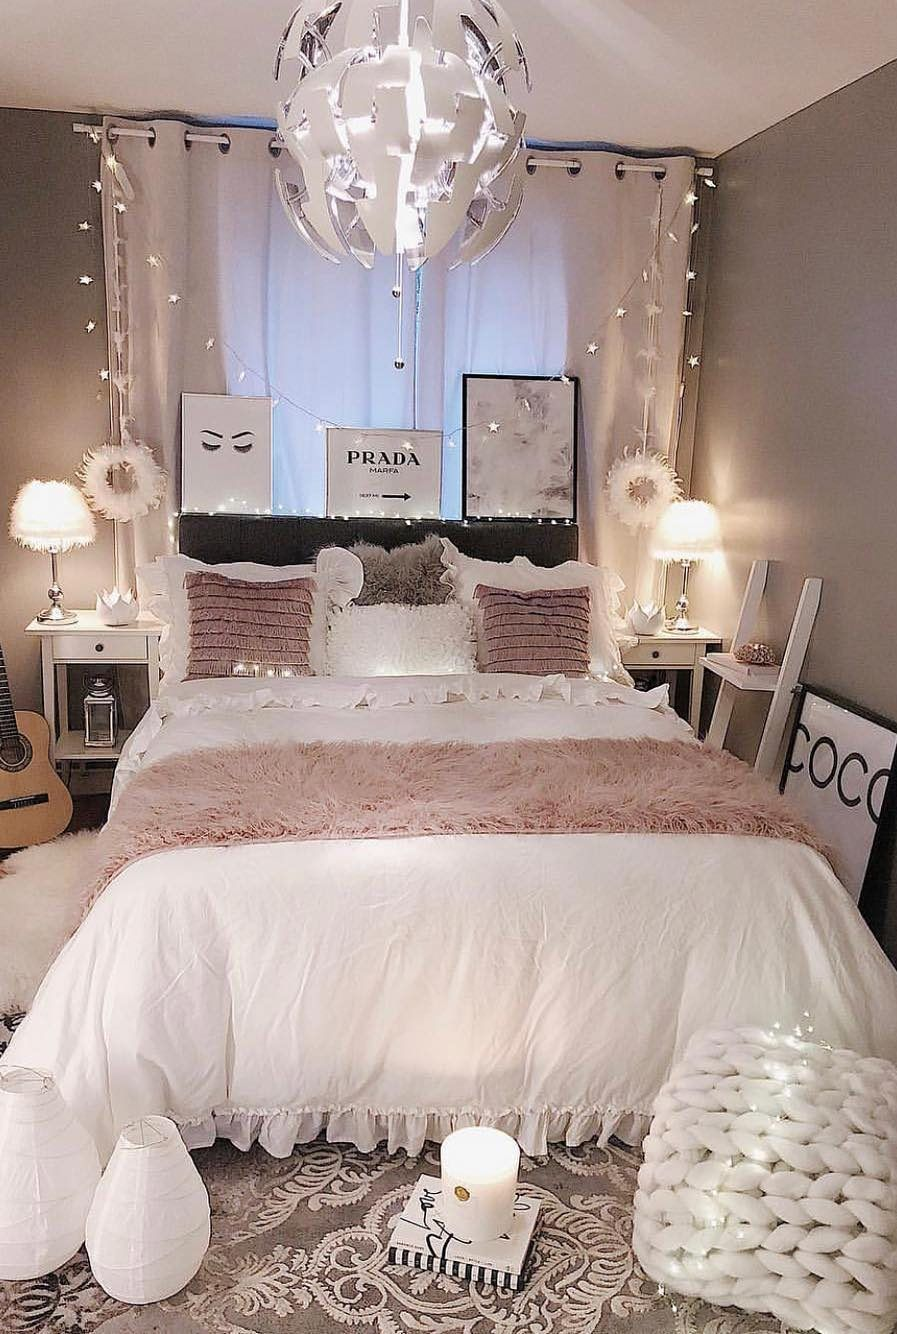 43 Small And Cute Bedroom Designs And Ideas For This Year Page 24 Of 43 Small Room Bedroom